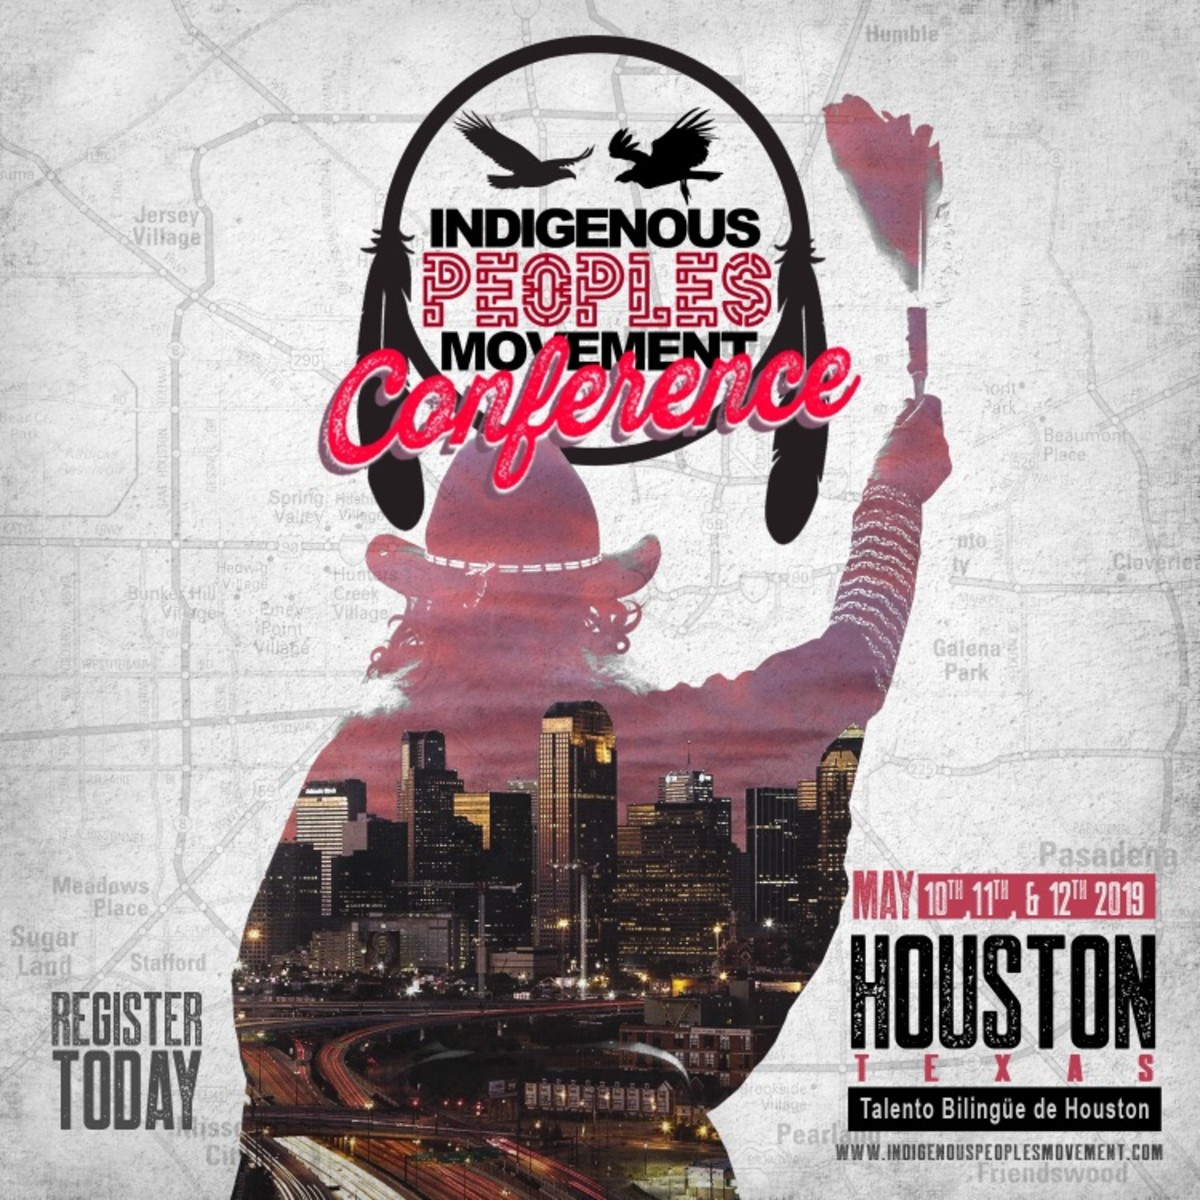 Indigenous Peoples Conference